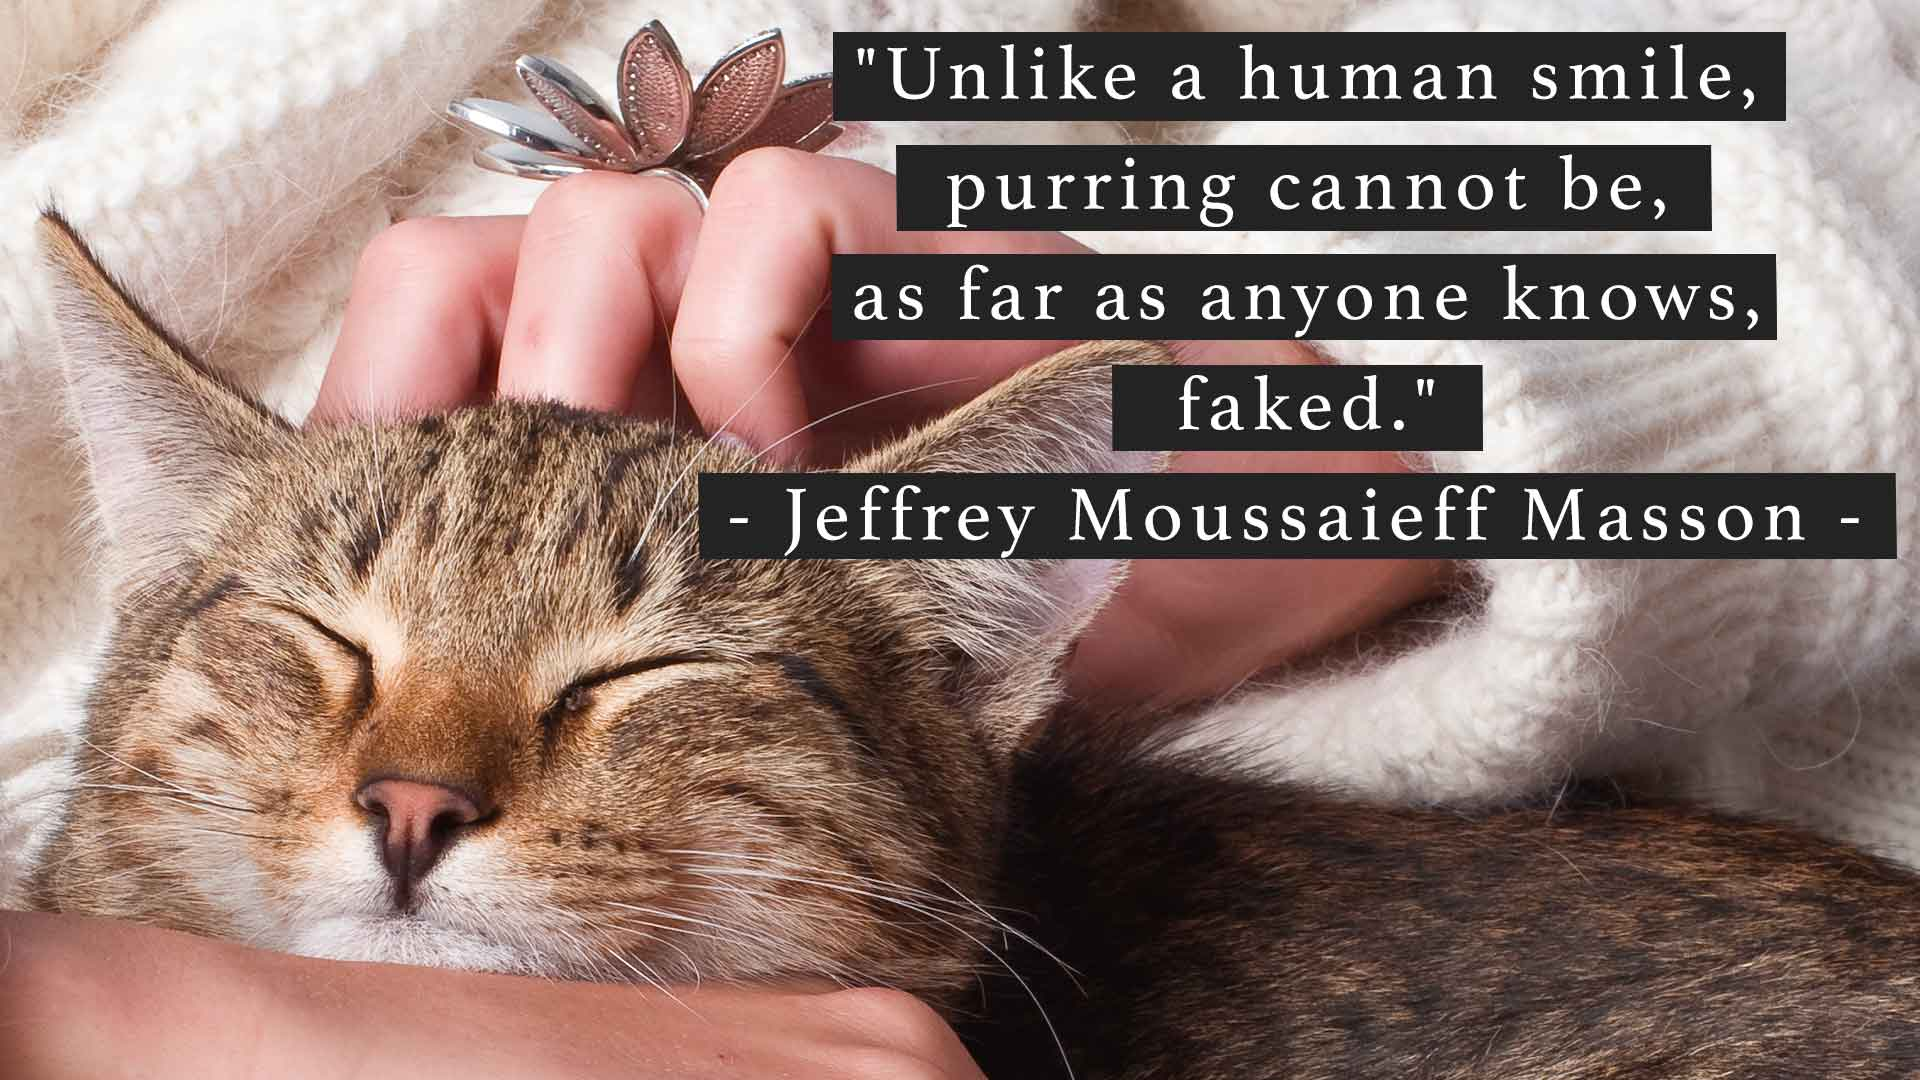 Unlike a human smile, purring cannot be, as far as anyone knows, faked